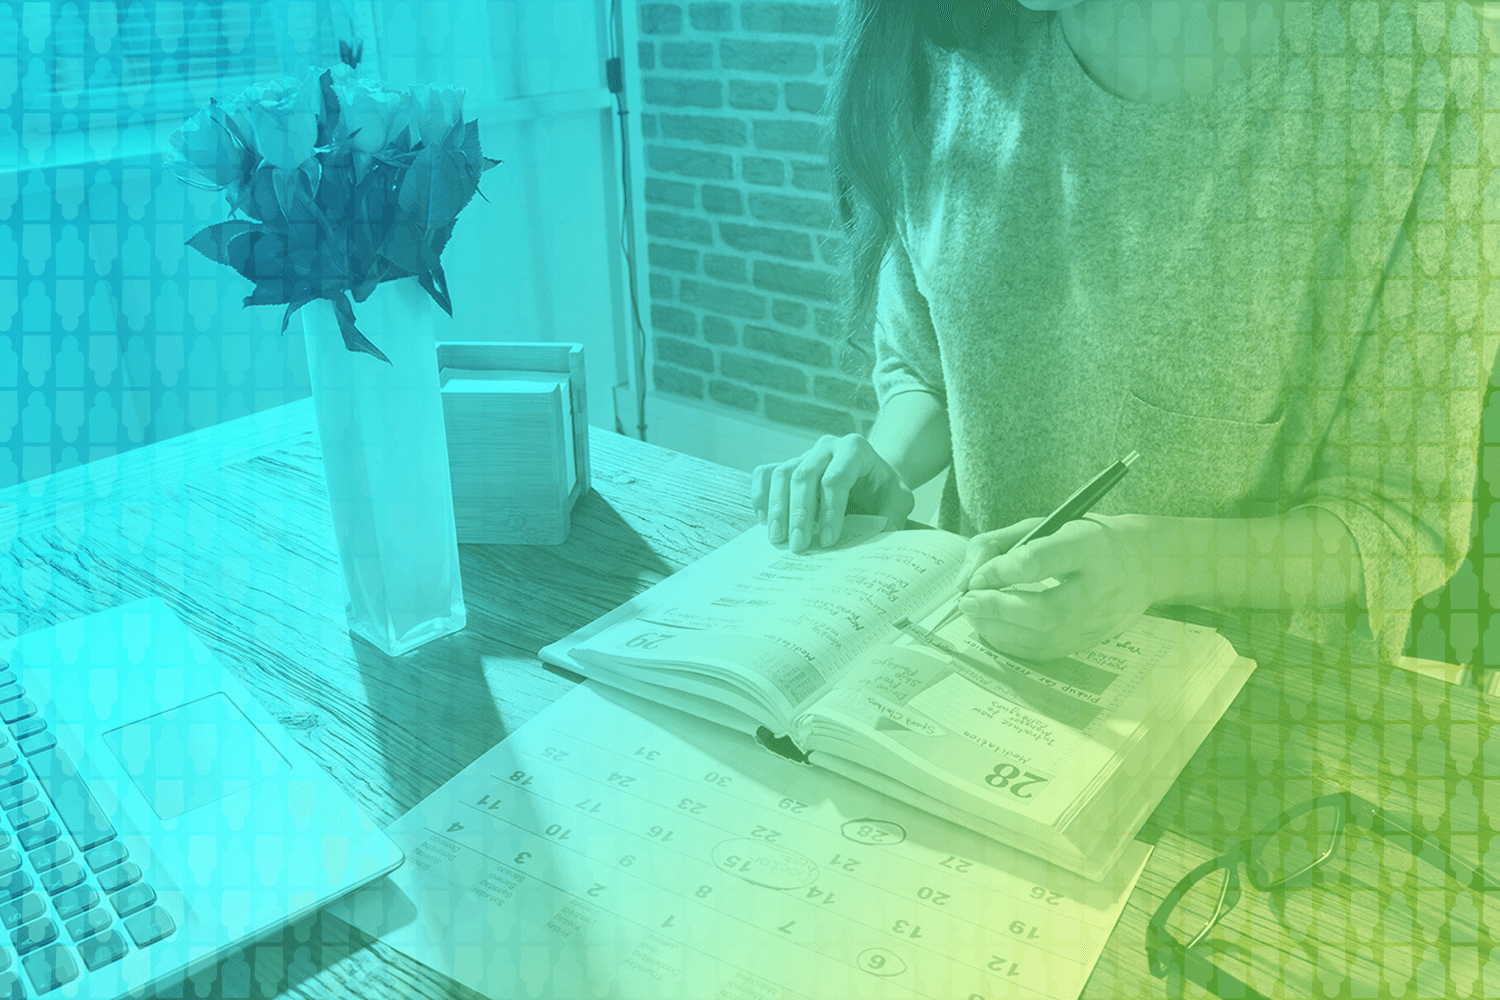 color-treated photo of a person working in a planner